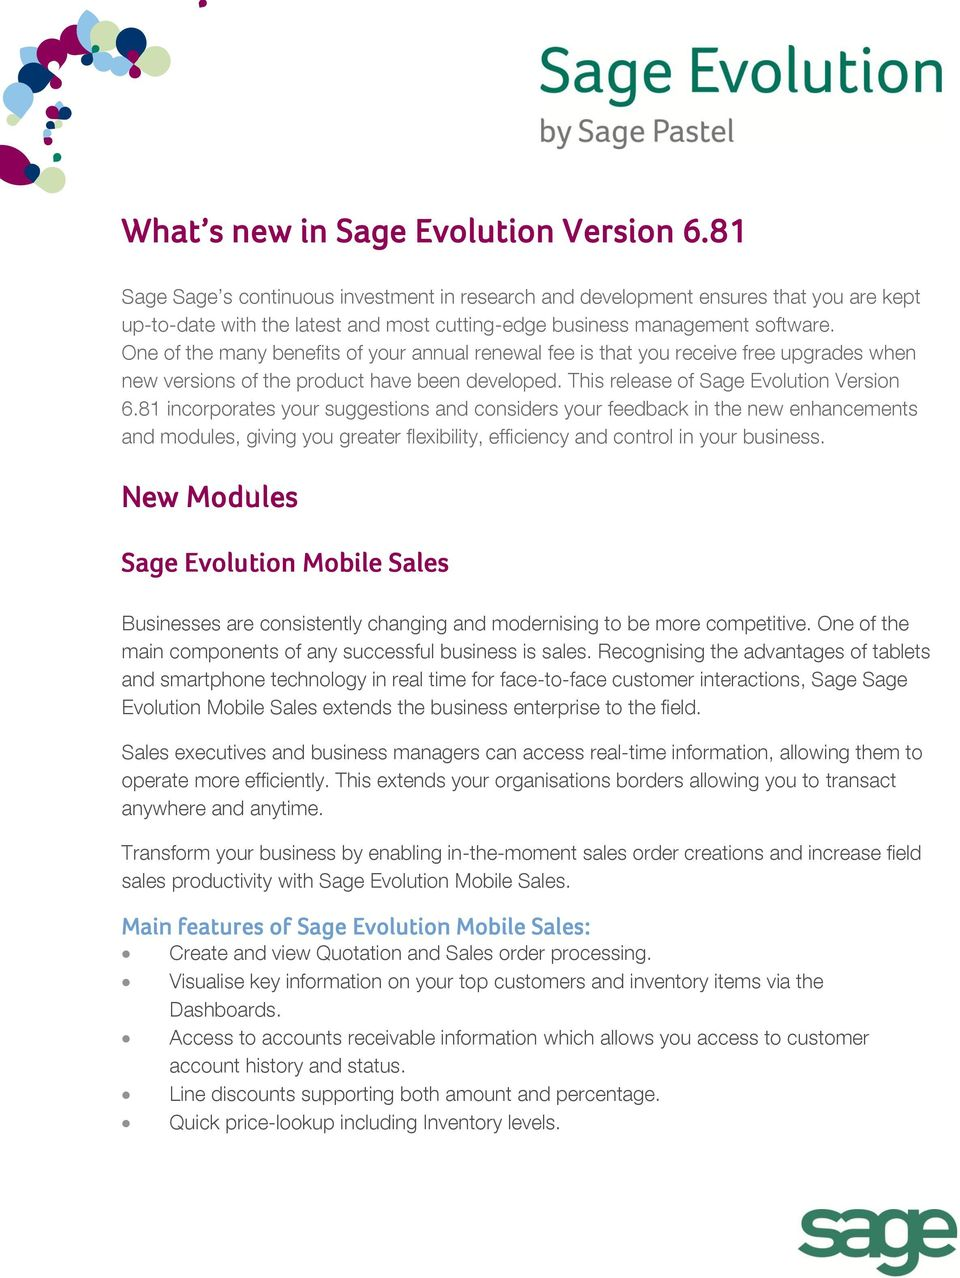 One of the many benefits of your annual renewal fee is that you receive free upgrades when new versions of the product have been developed. This release of Sage Evolution Version 6.